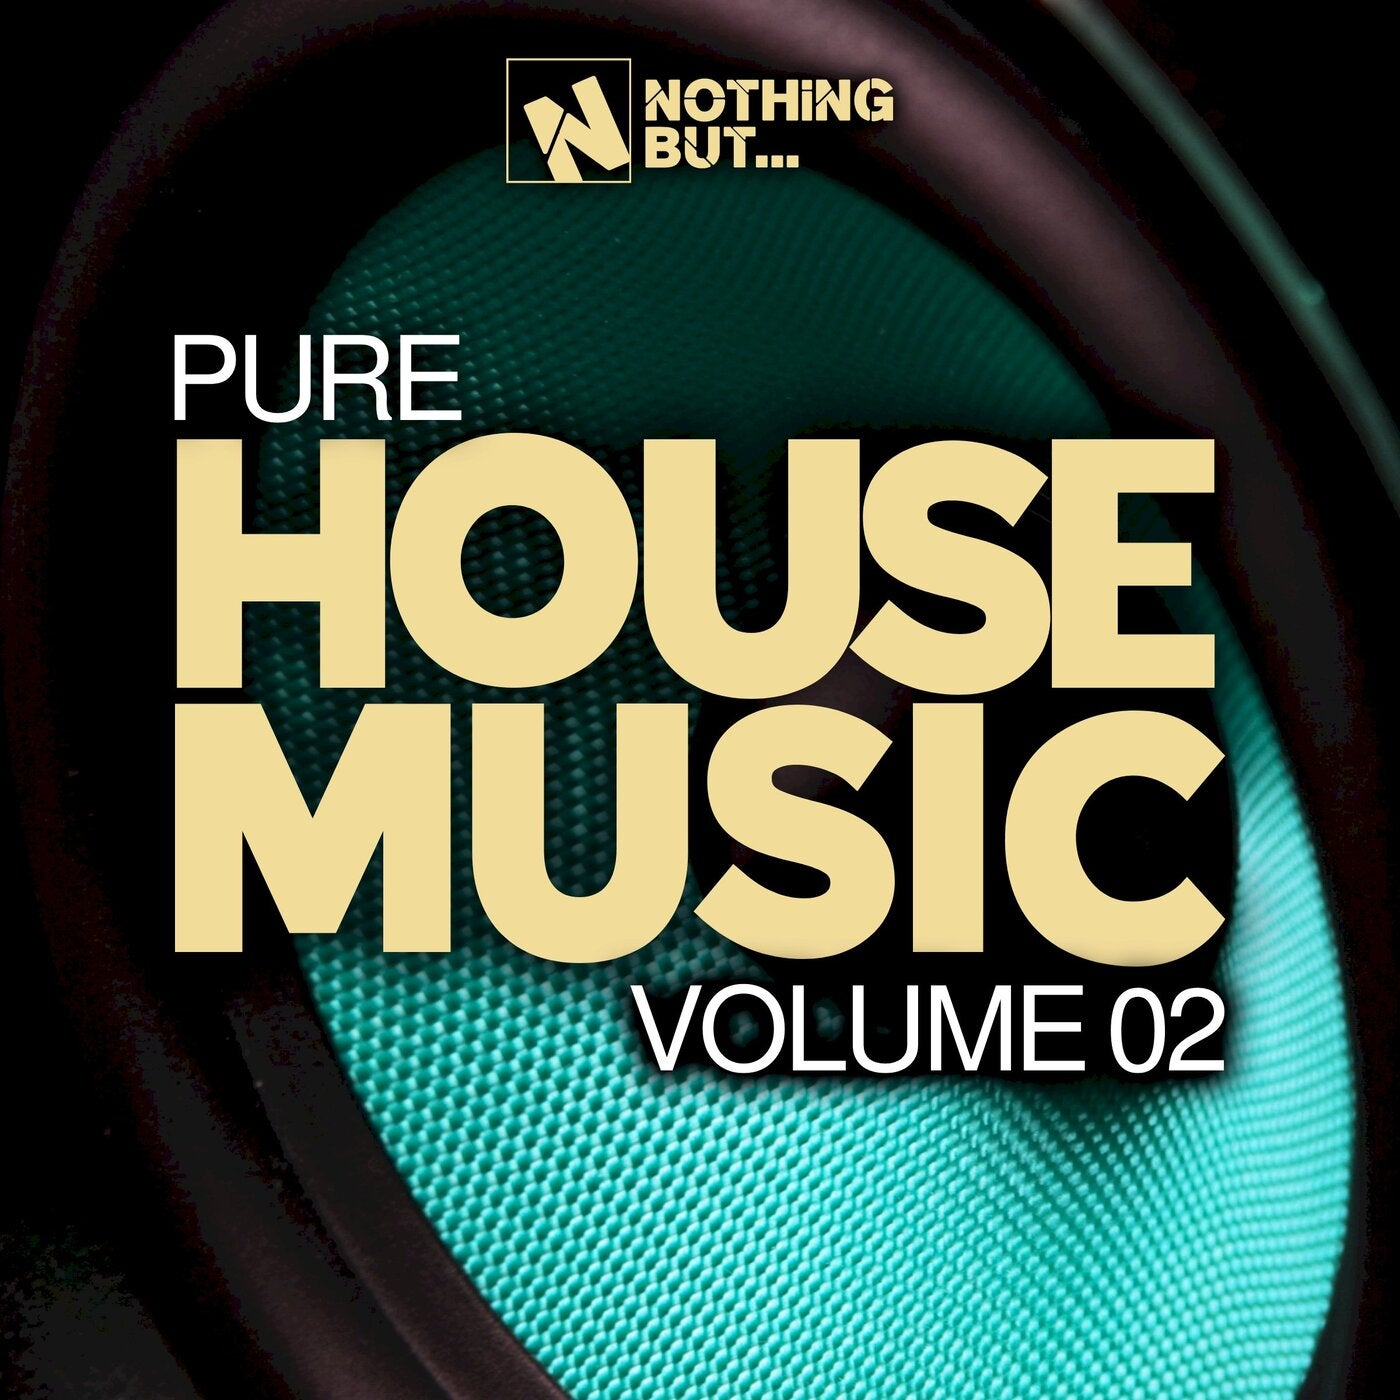 Various Performers - Nothing But Pure House Music, Vol. 02 (2021)